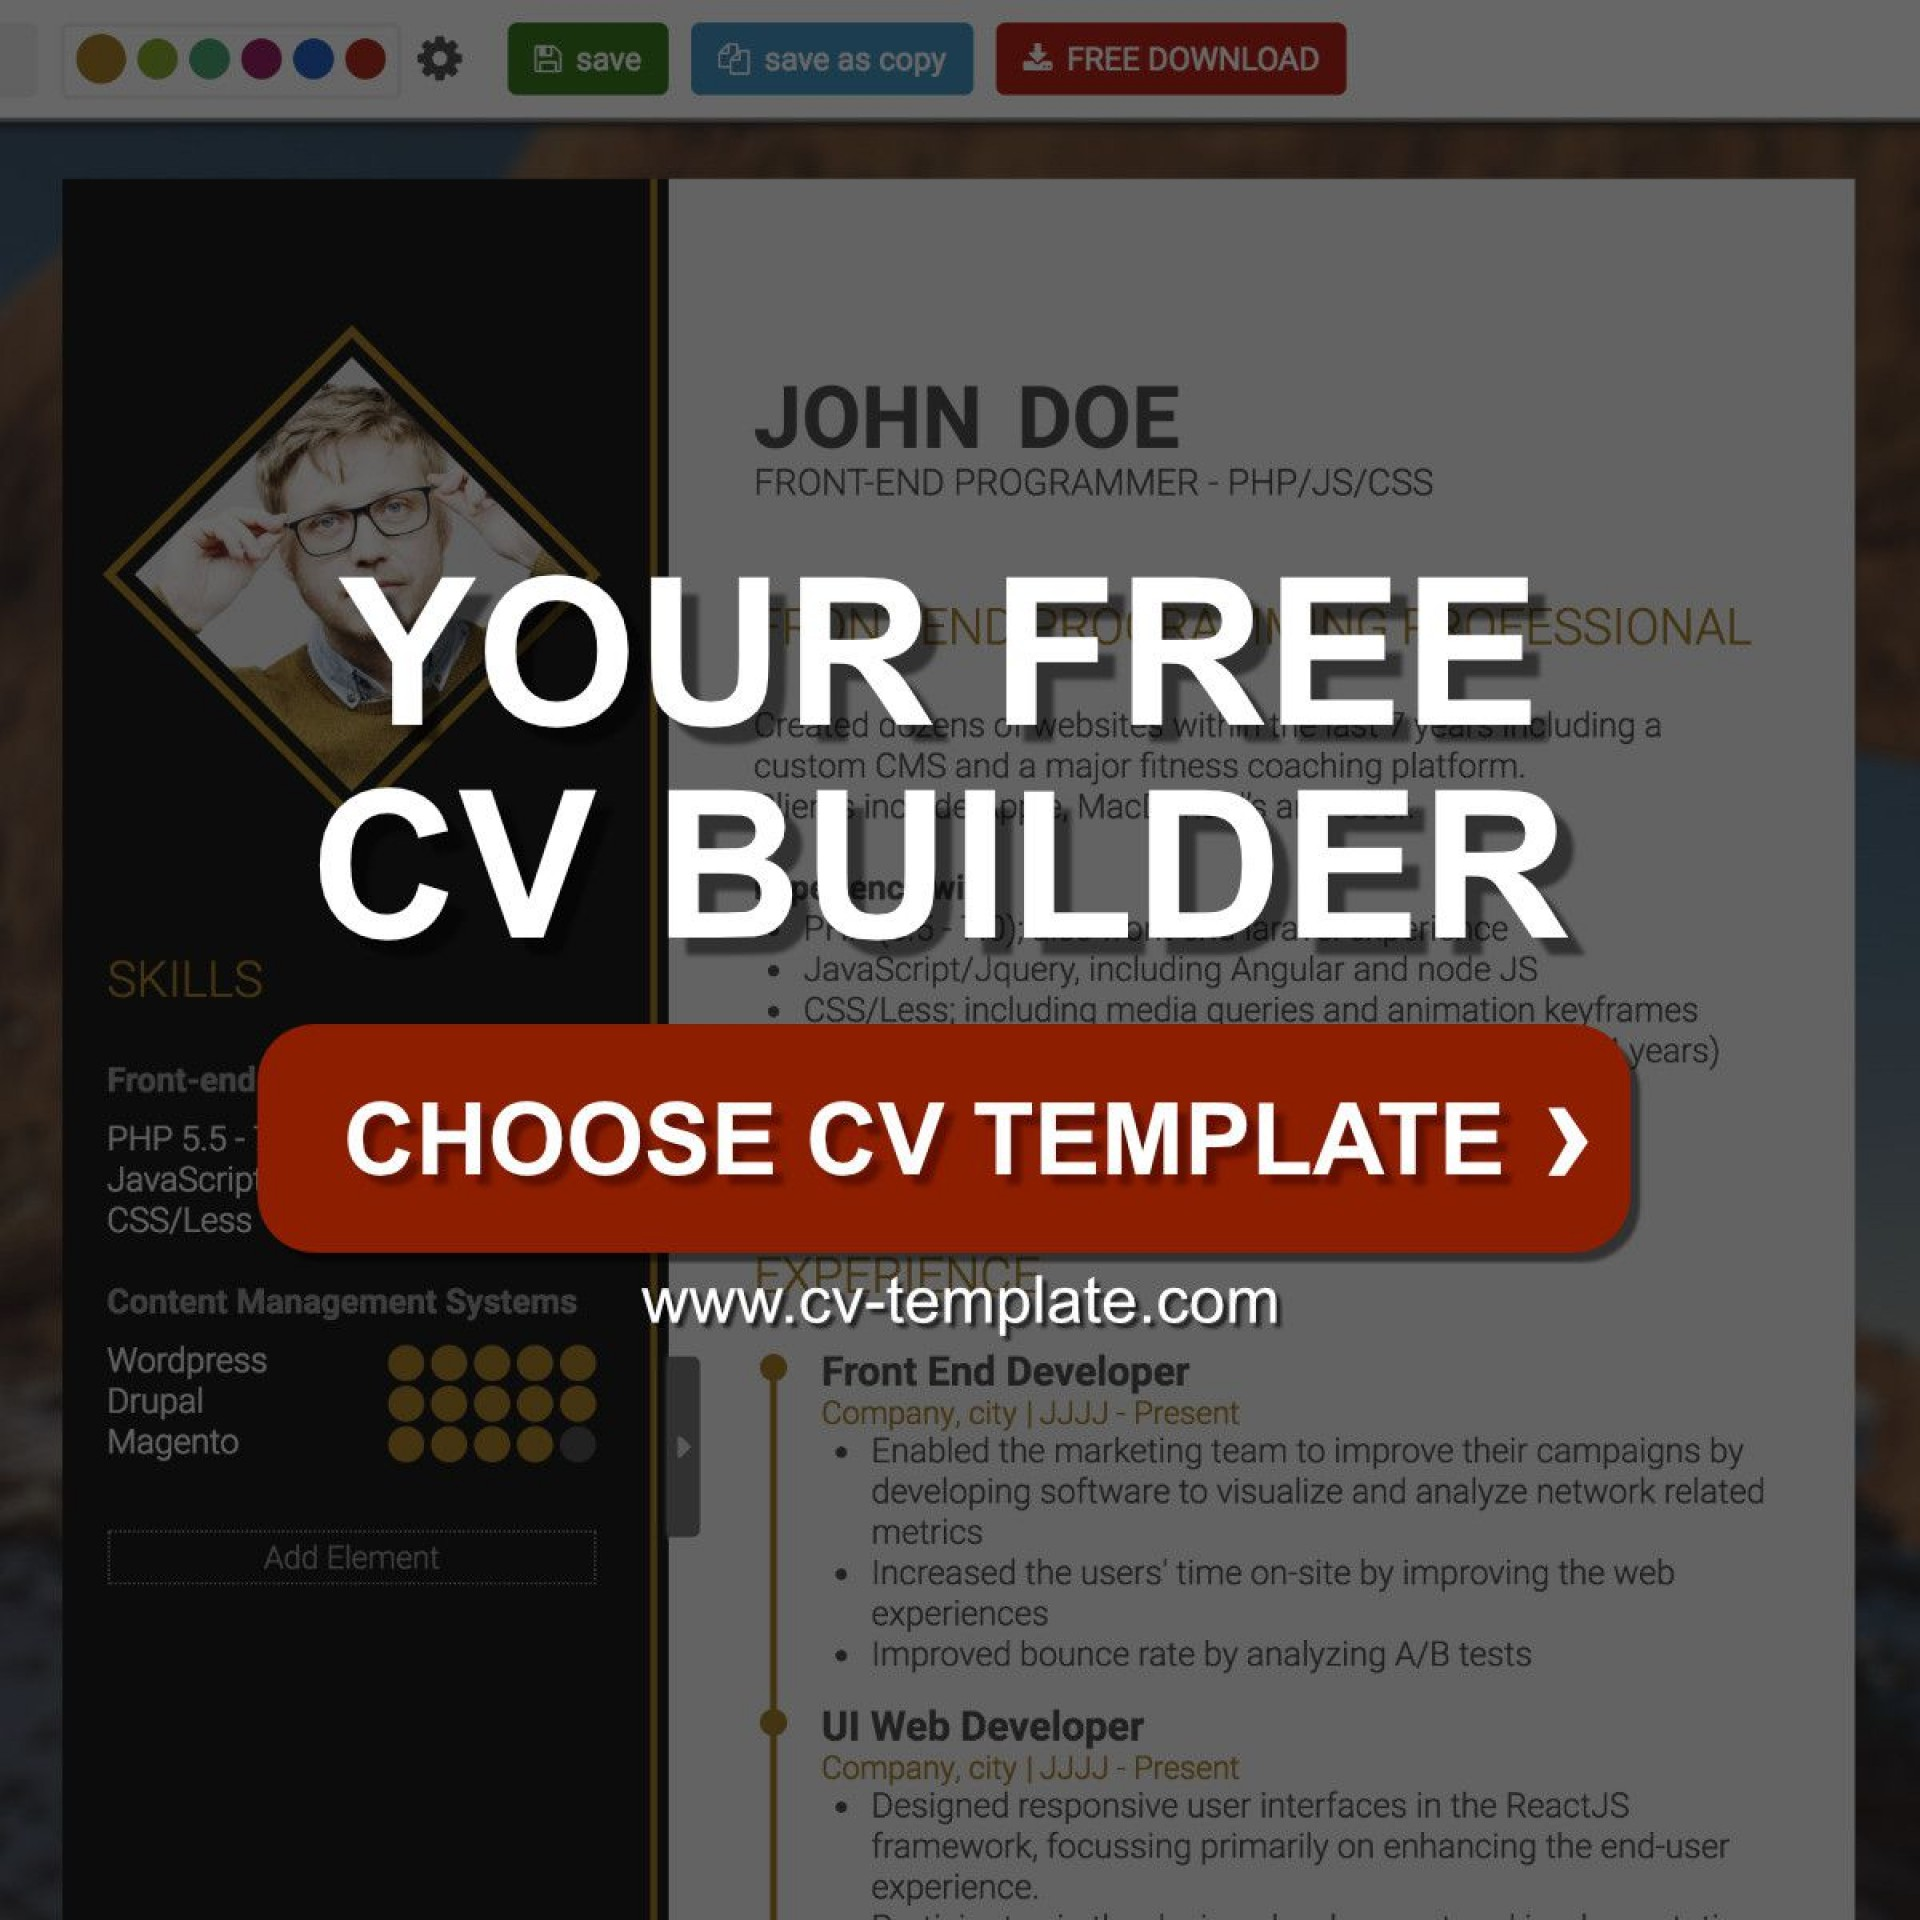 005 Awesome Create Resume Online Free Template Concept 1920